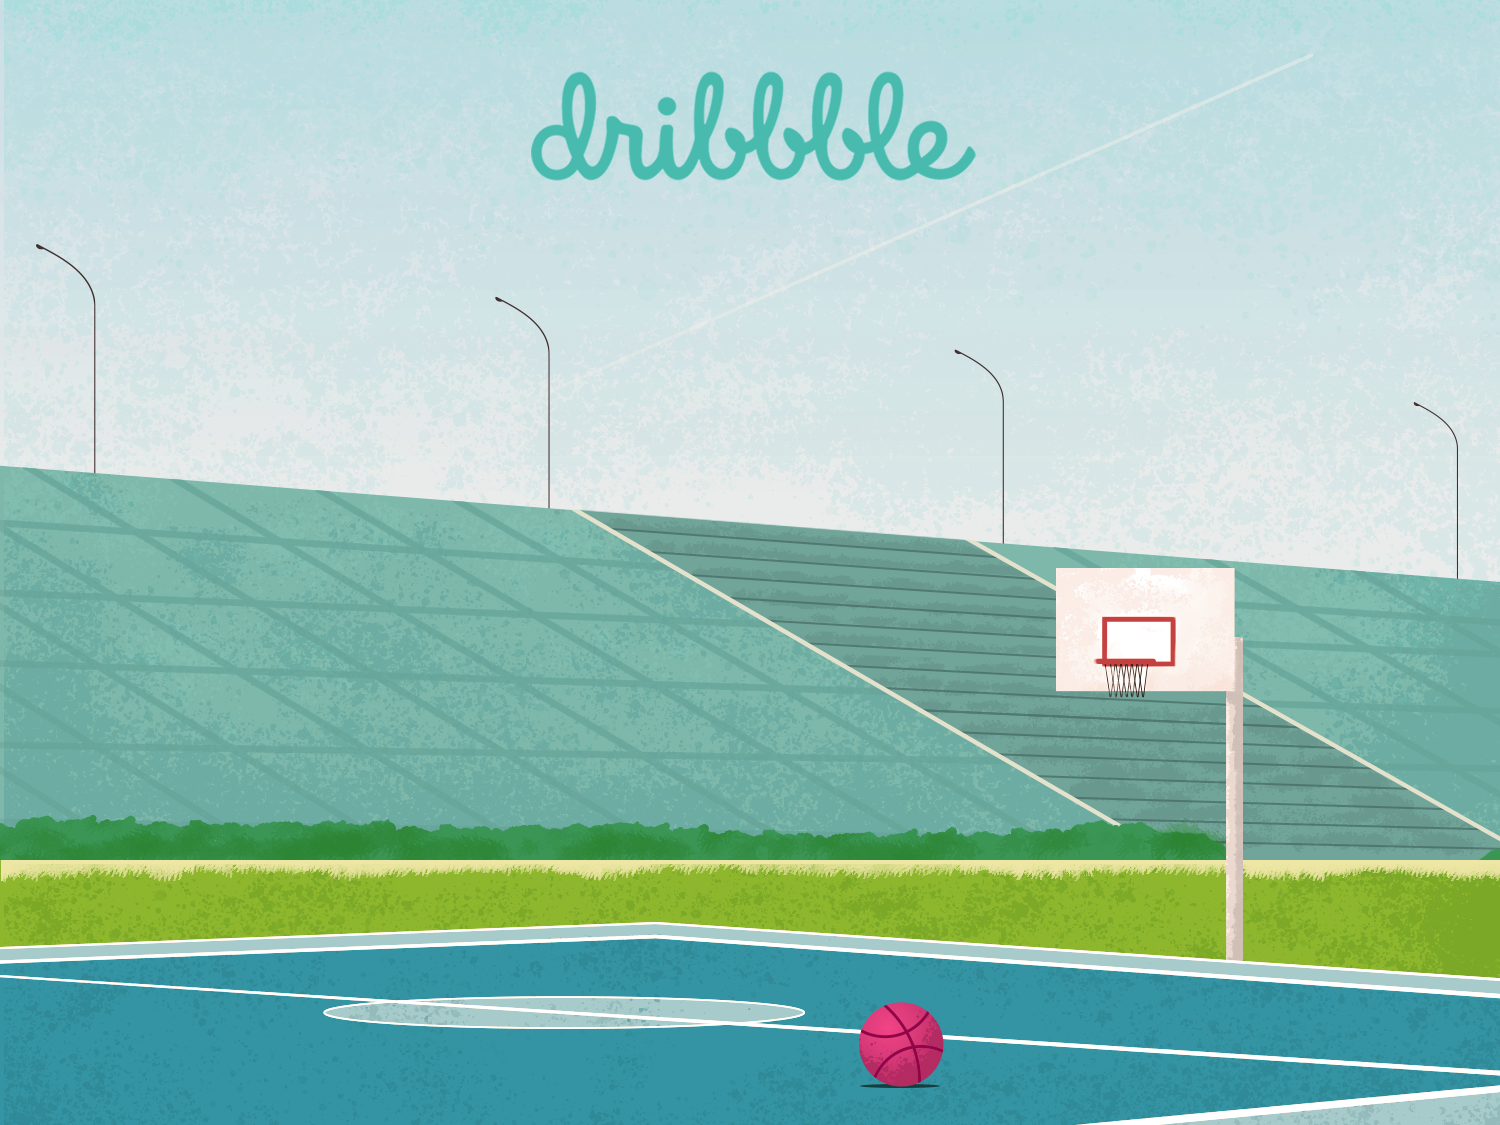 Dribbble Court illustration first shot court basketball ball